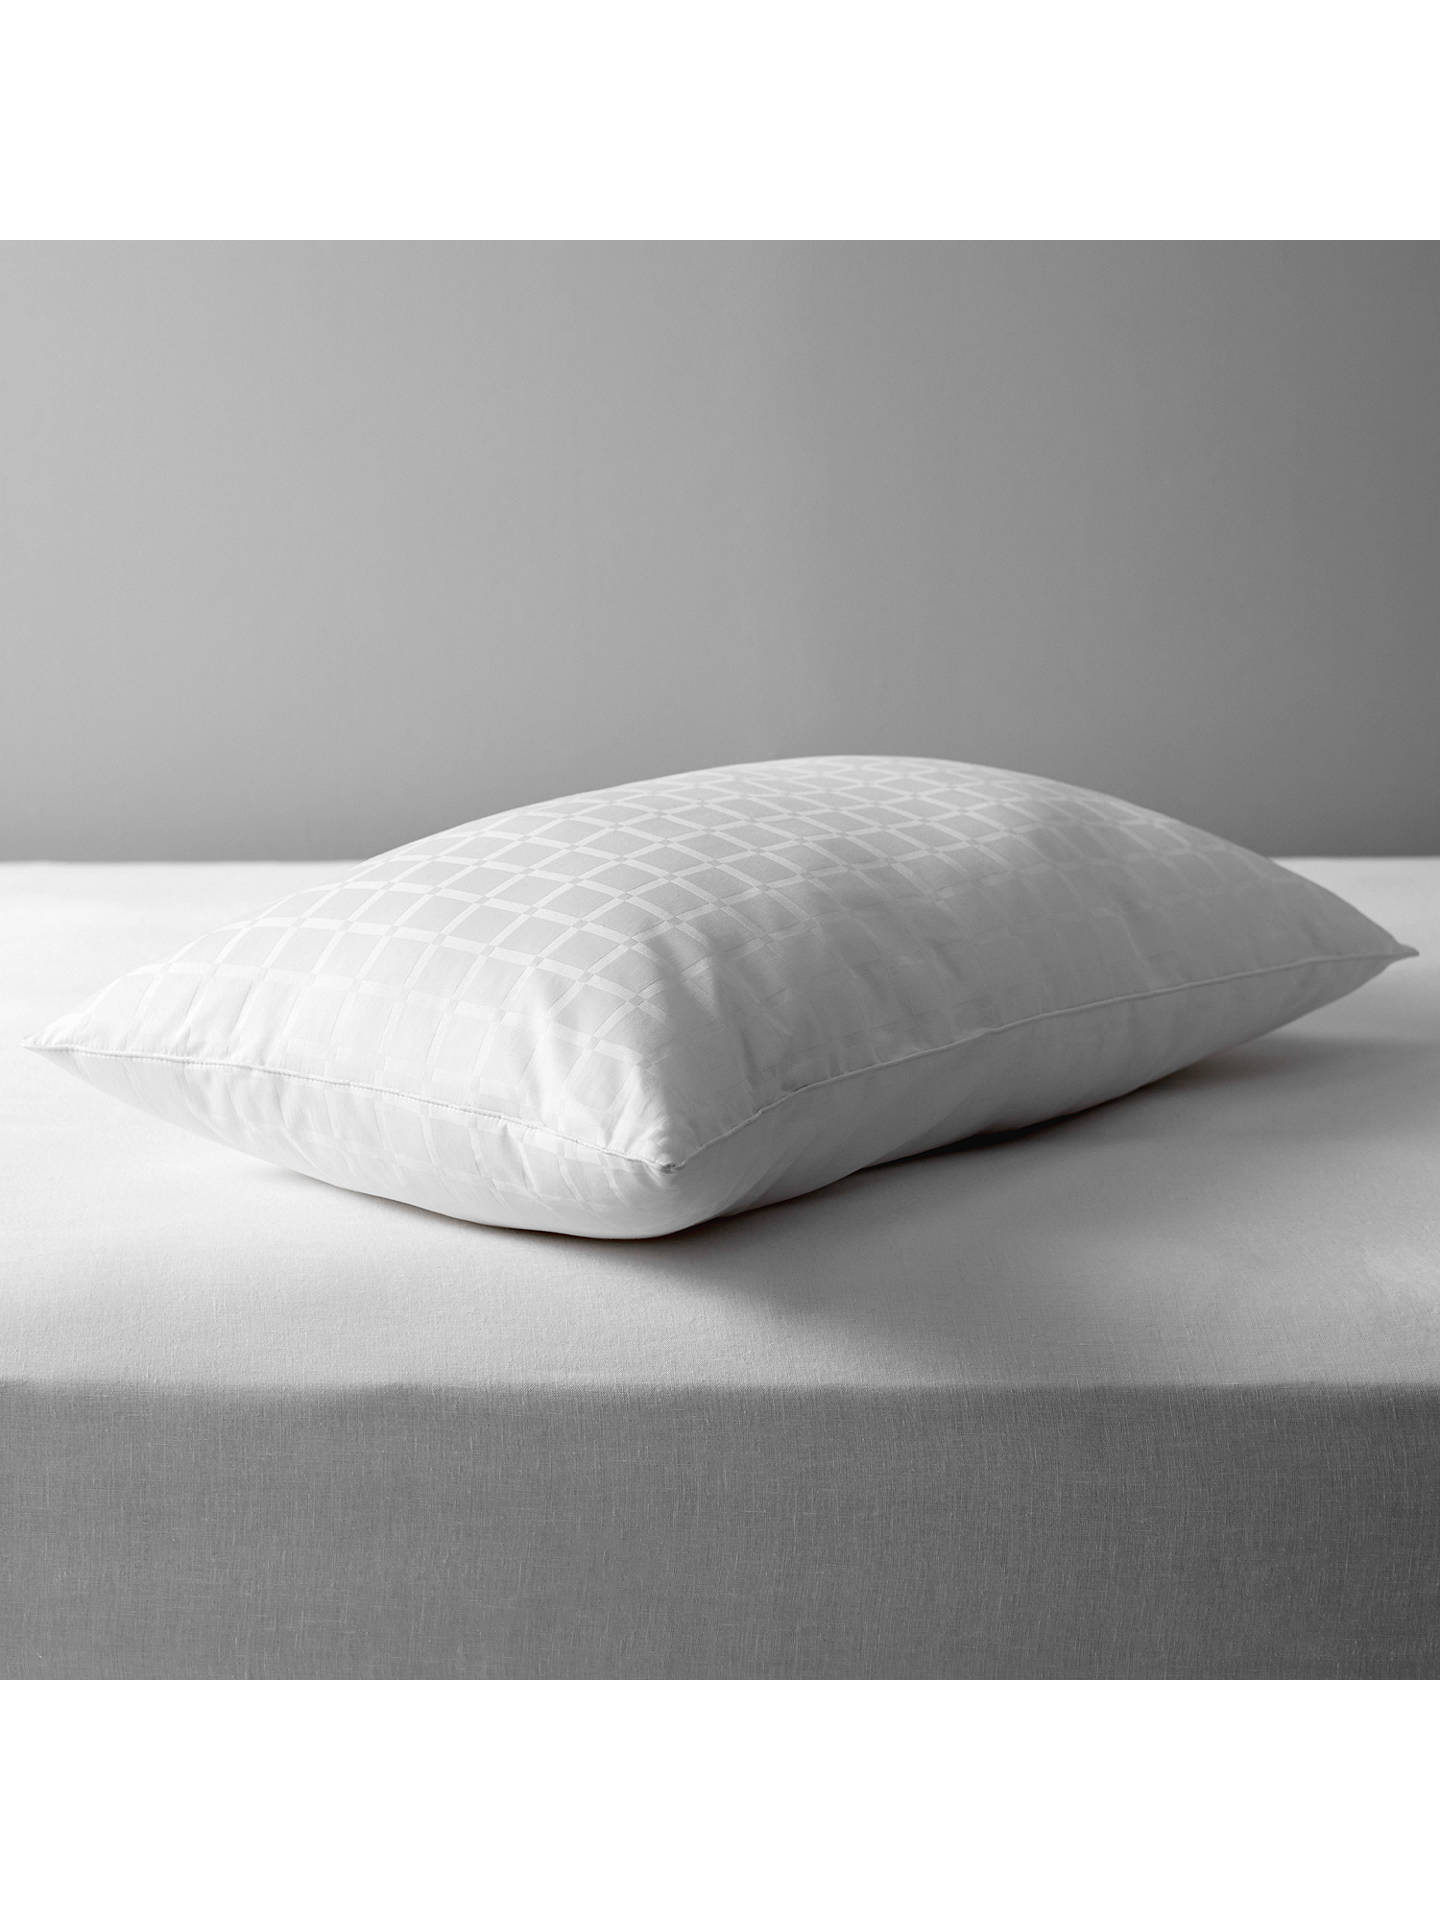 Buy John Lewis & Partners Specialist Synthetic Active Anti Allergy Standard Pillow, Medium Online at johnlewis.com